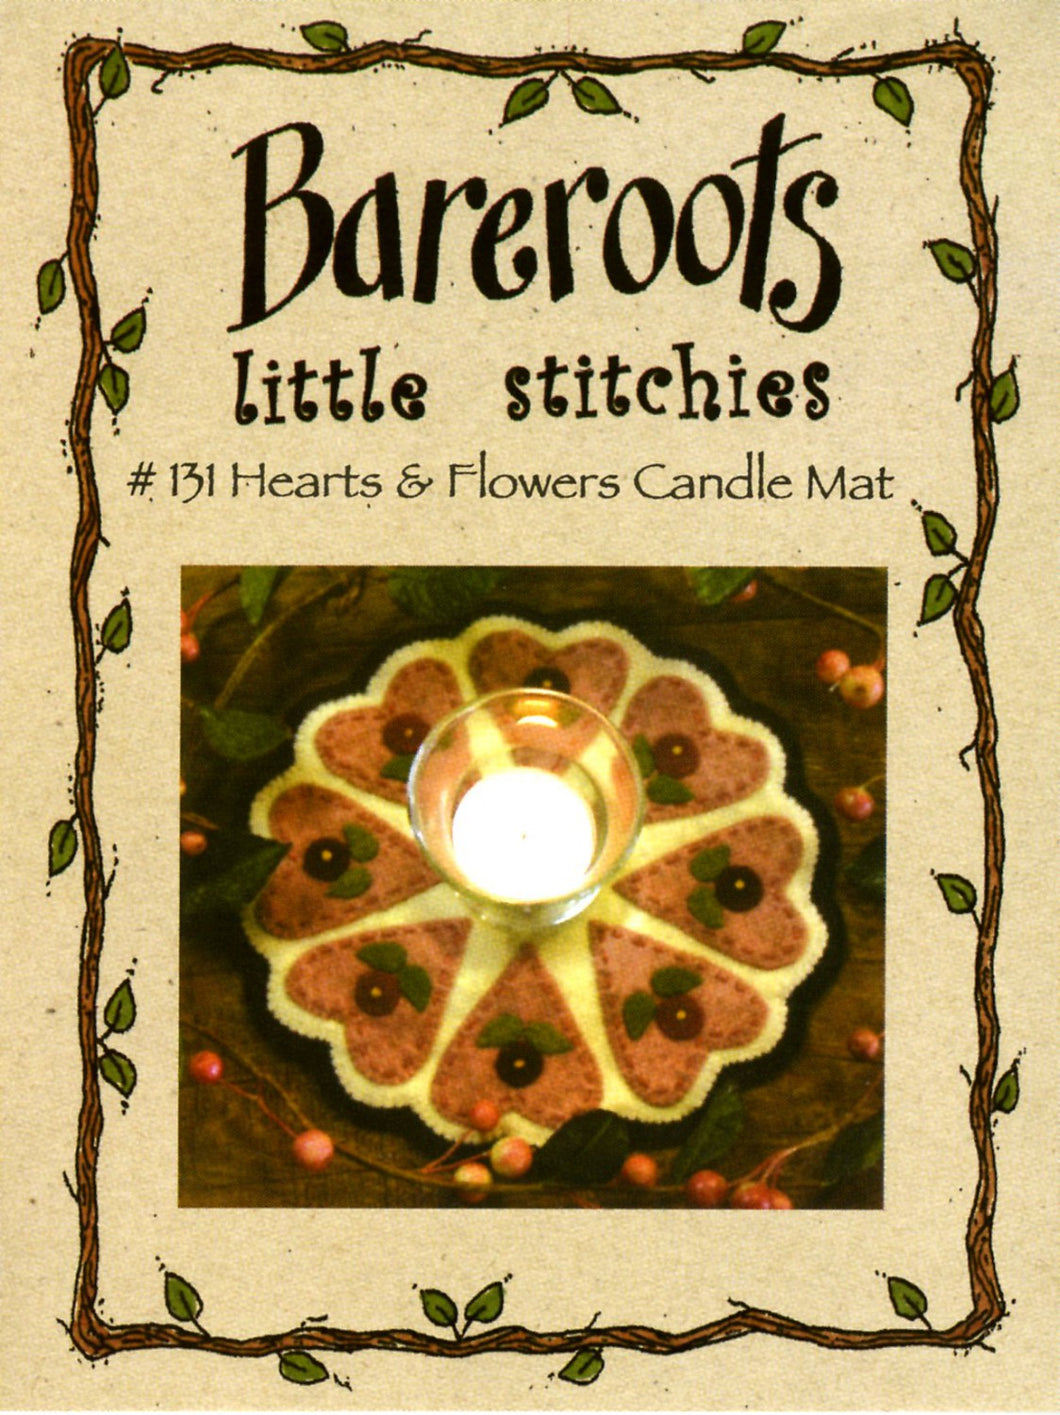 Hearts & Flowers Candle Mat by Bareroots